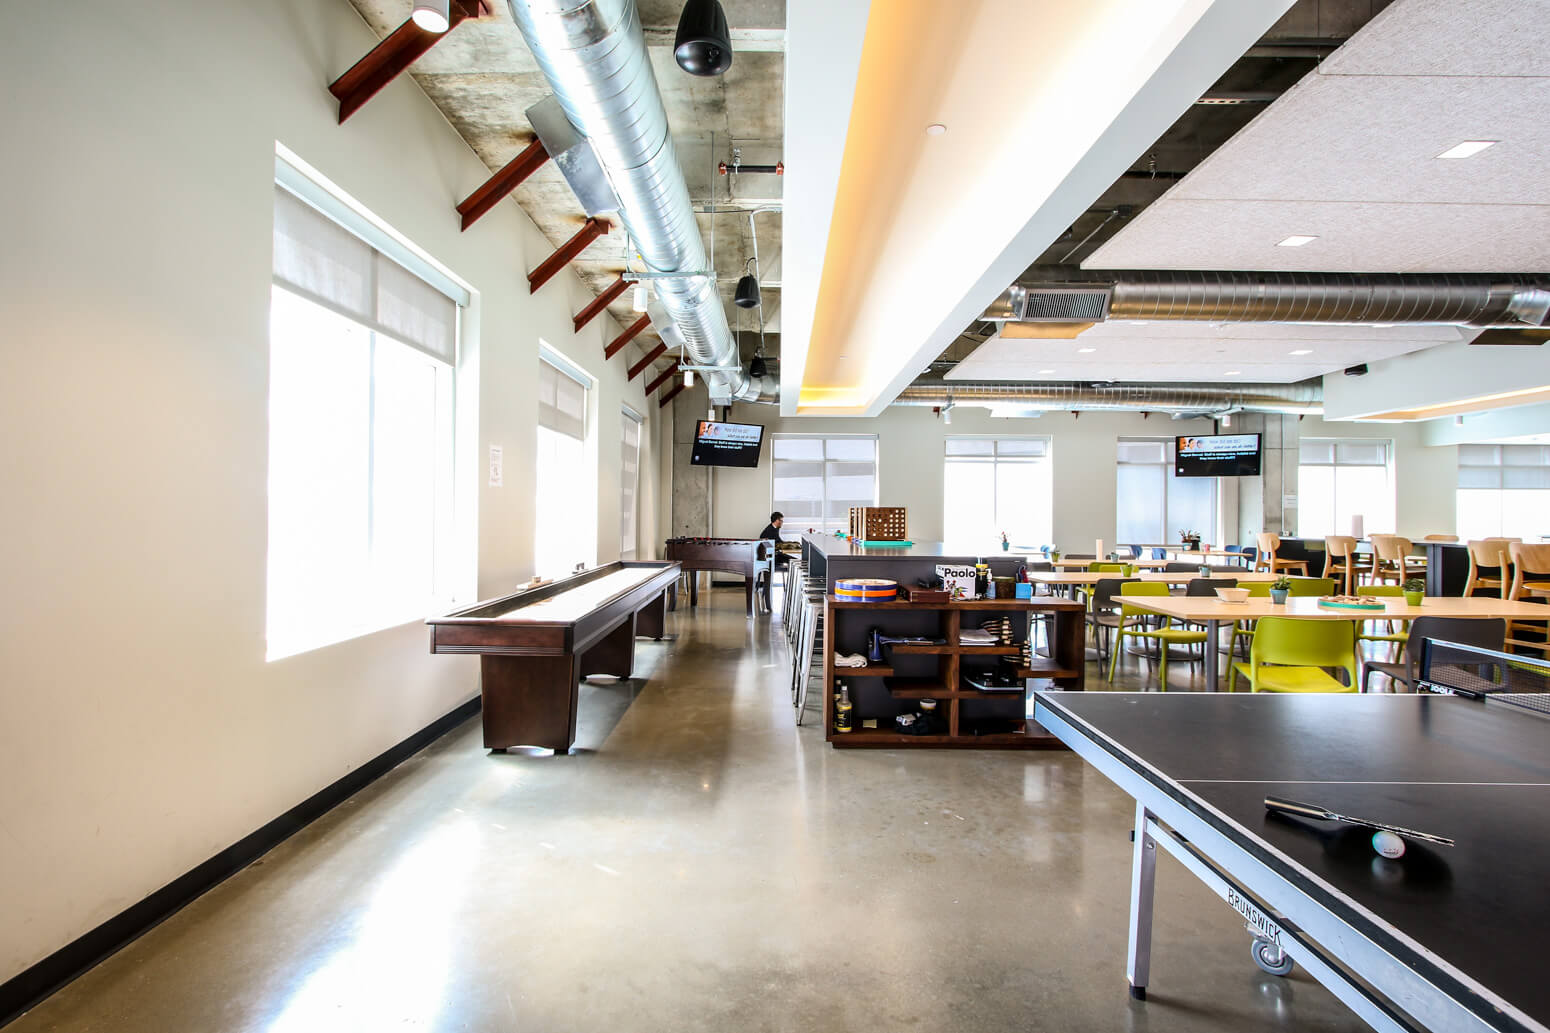 HomeAway Austin Office Killer Spaces-14